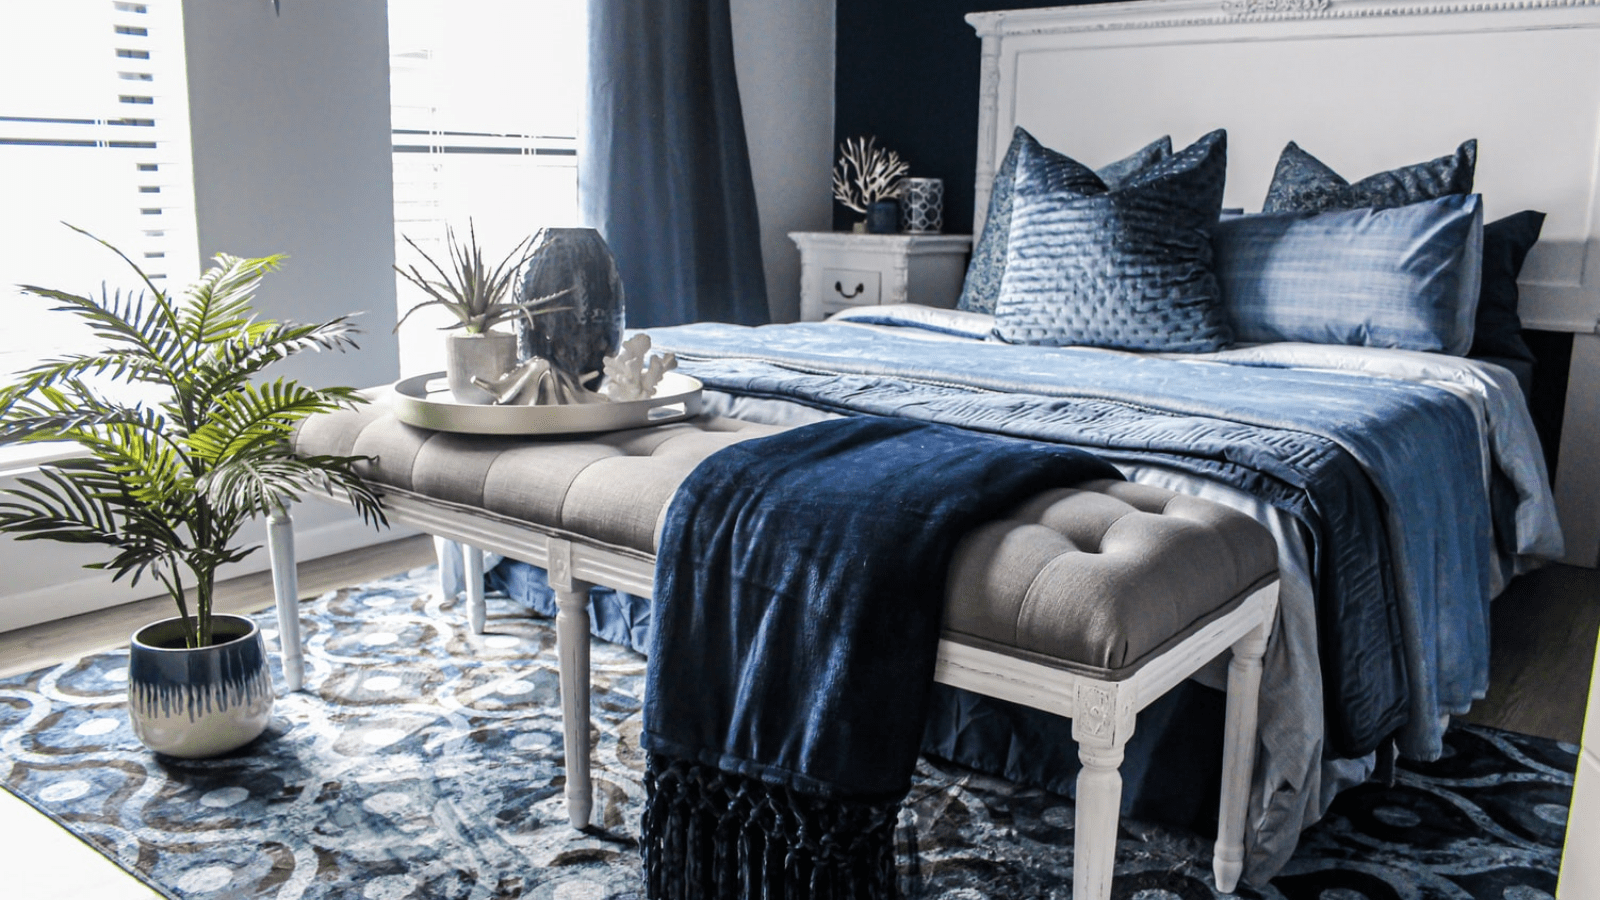 Creating Sustainable and Bold Home Interiors